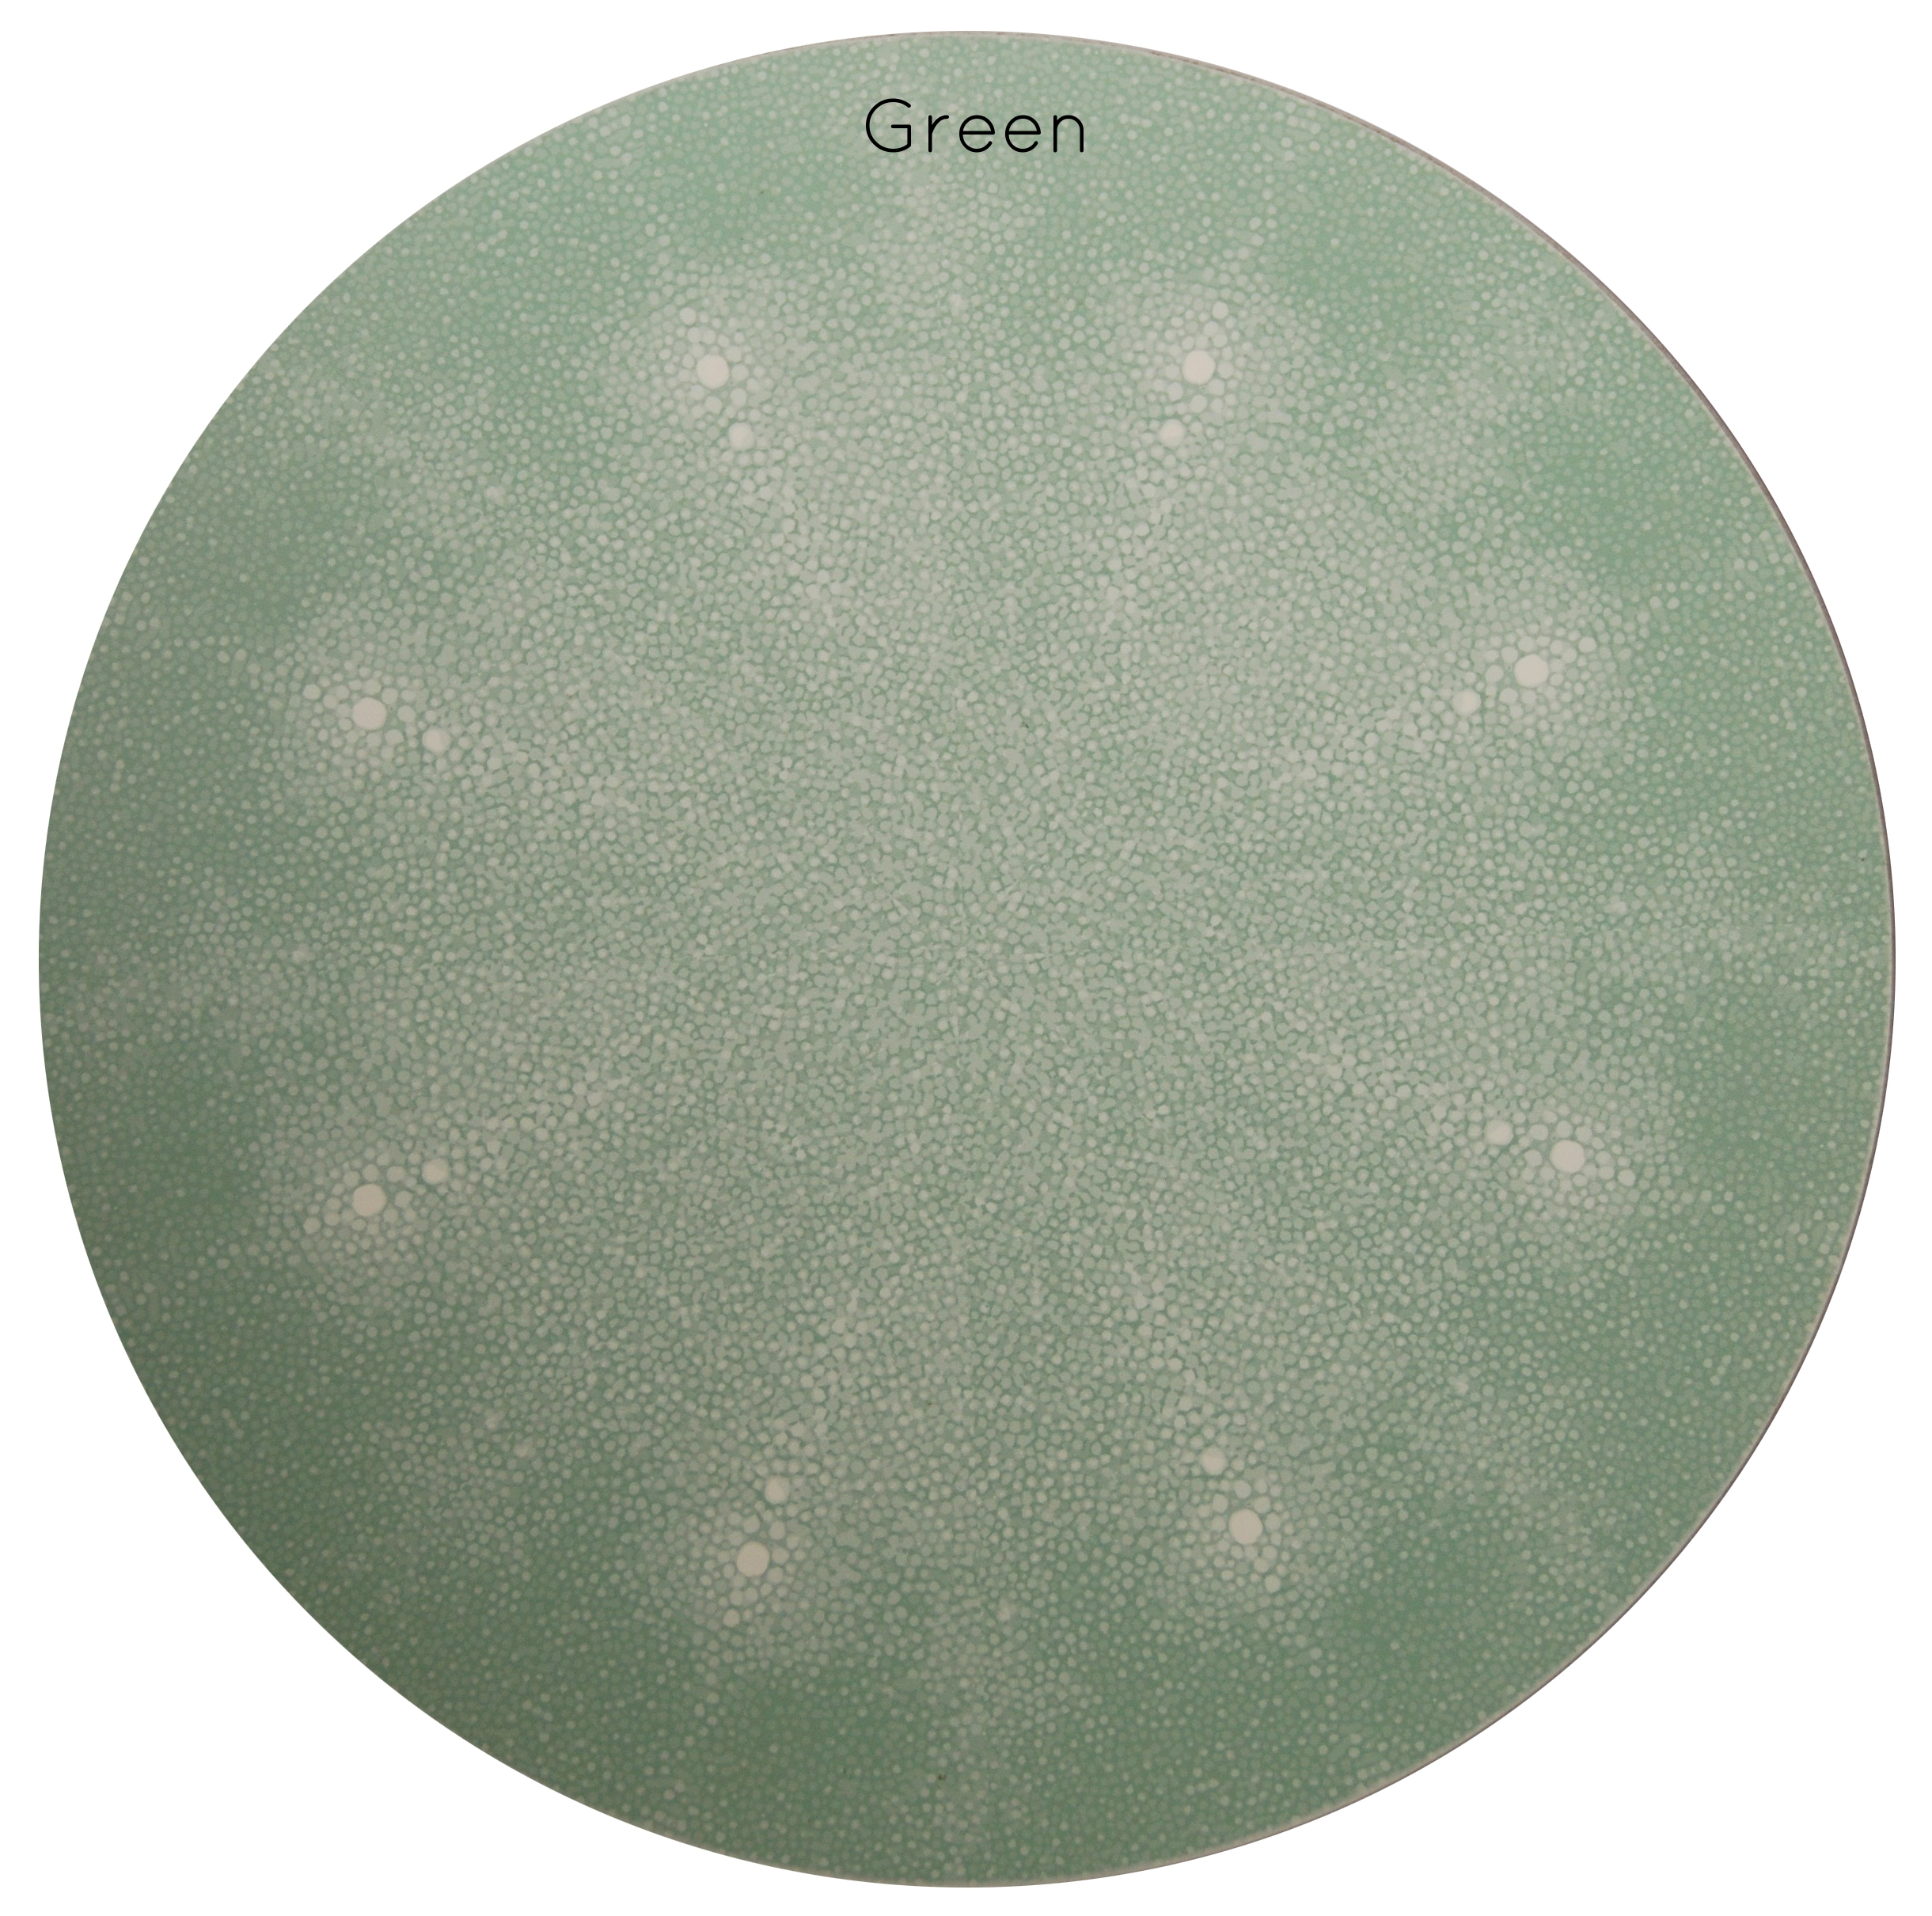 green shagreen.jpg